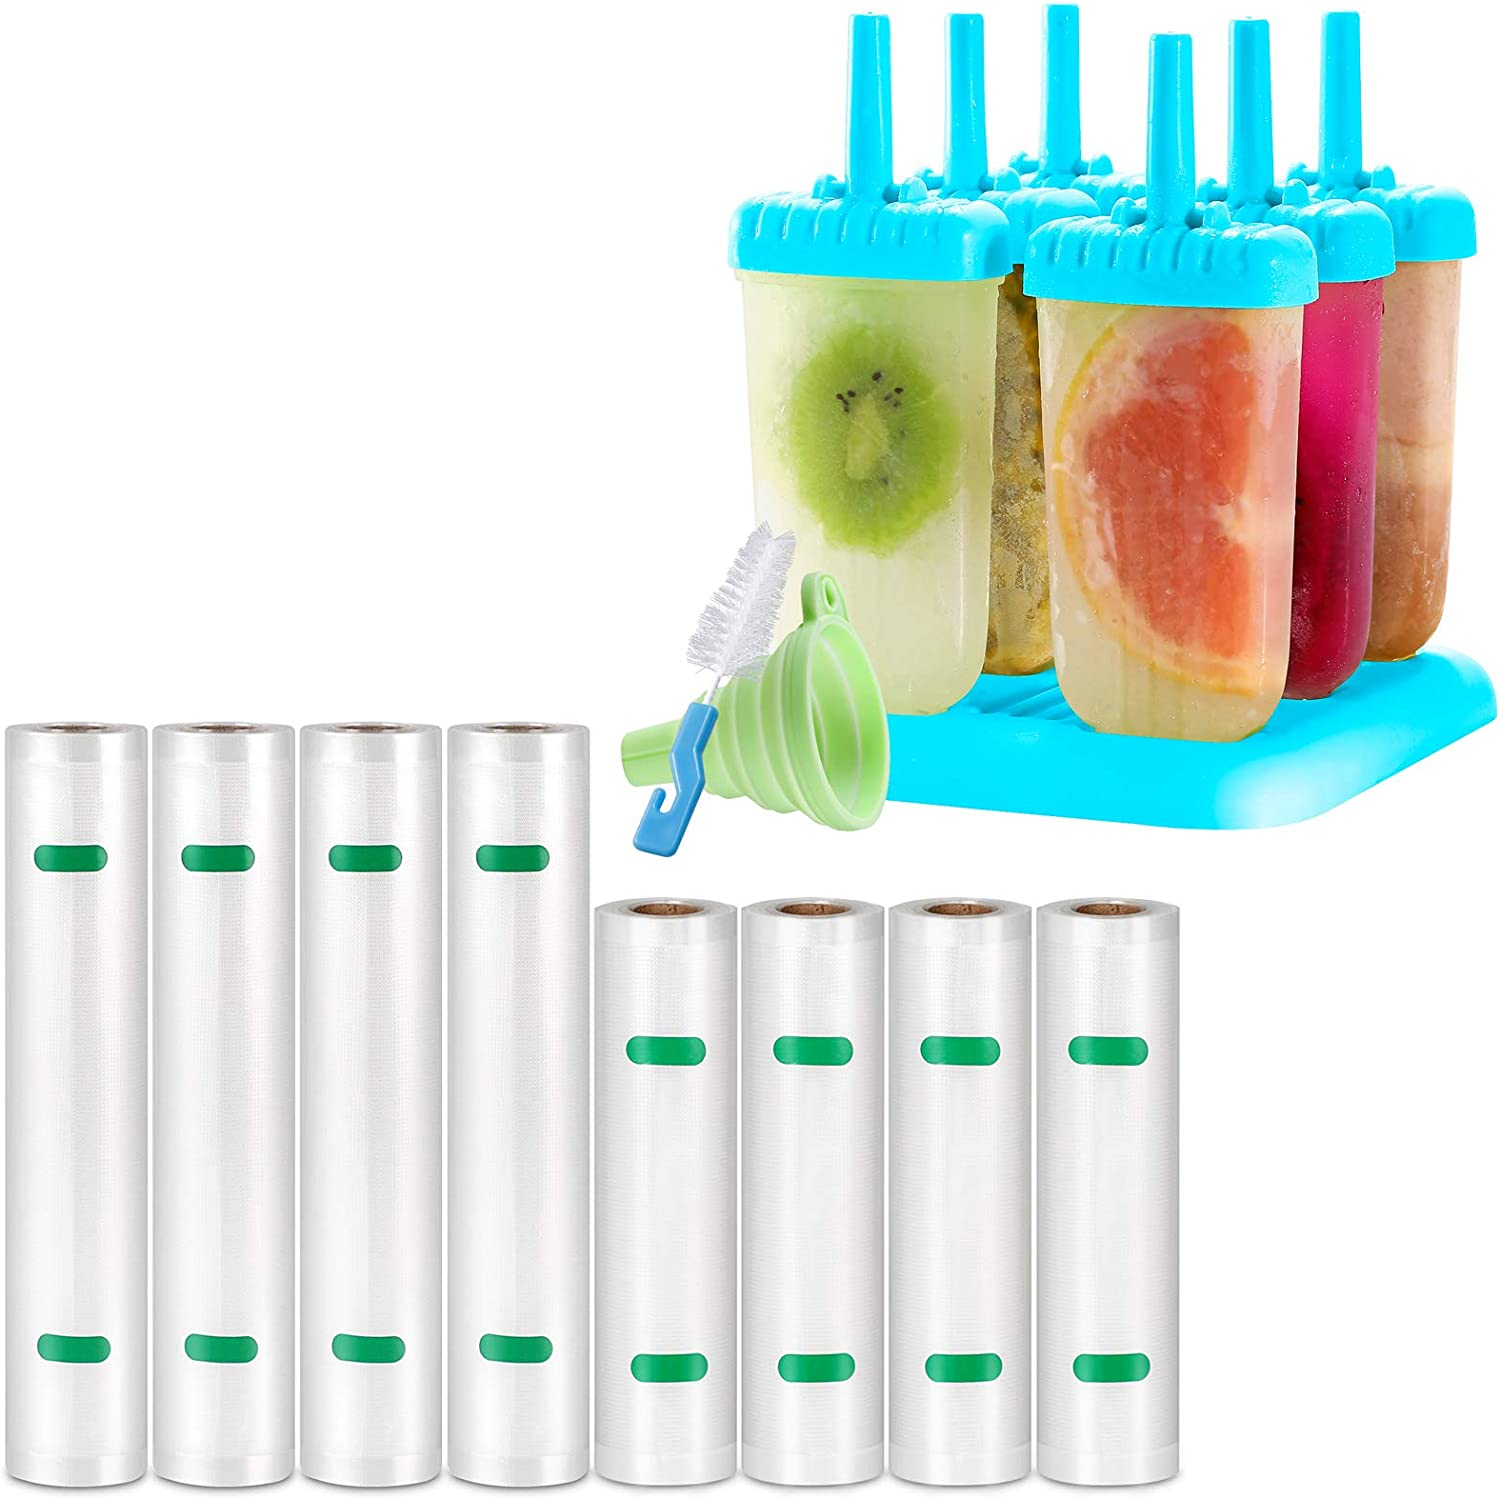 Kootek 8 Oakland Mall Rolls Limited price sale Vacuum Sealer Bags Mo for Food Popsicle and Saver